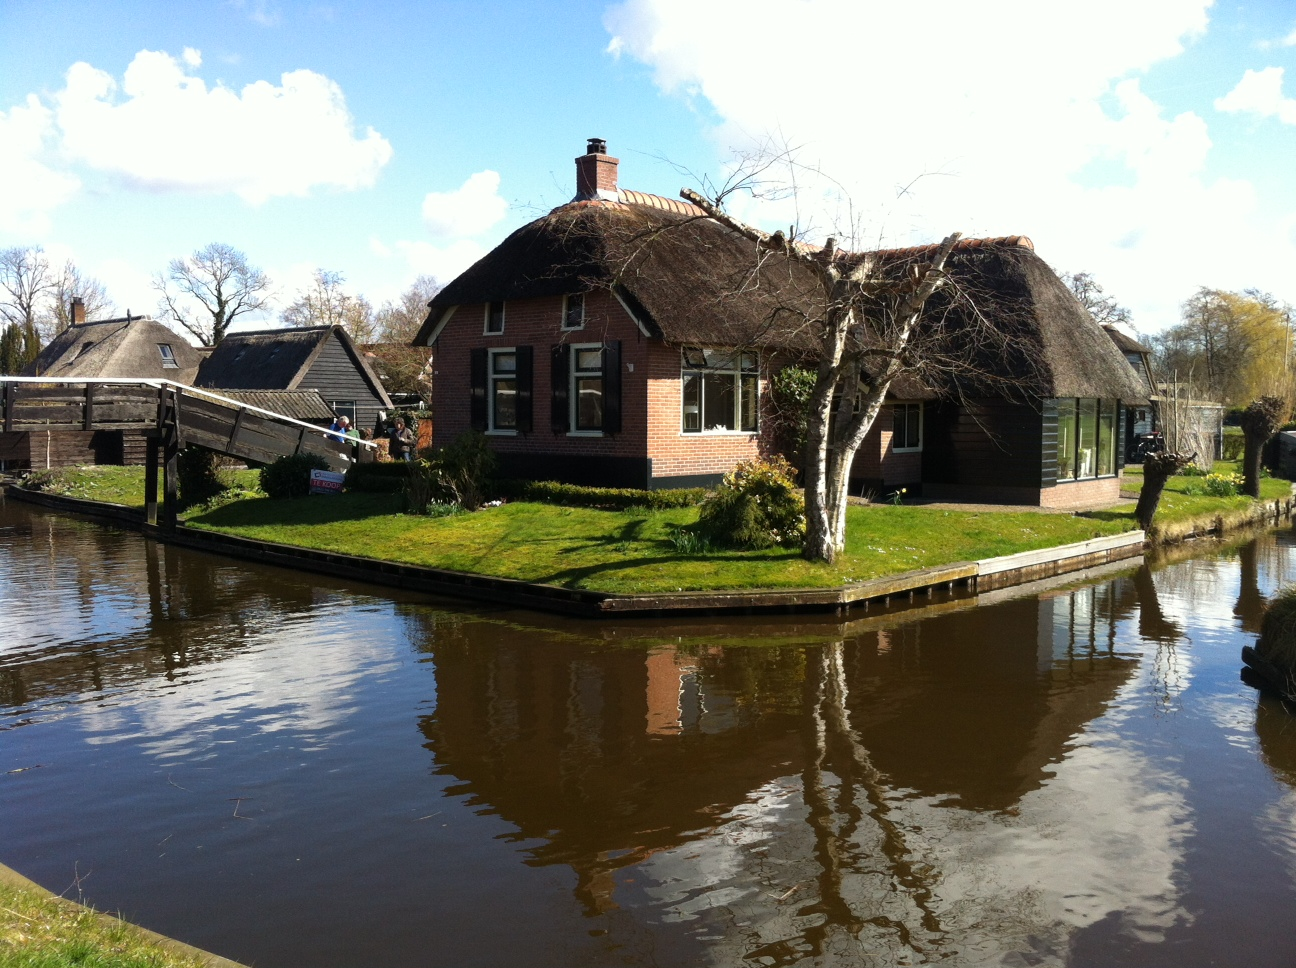 Enjoy your visit to Giethoorn!